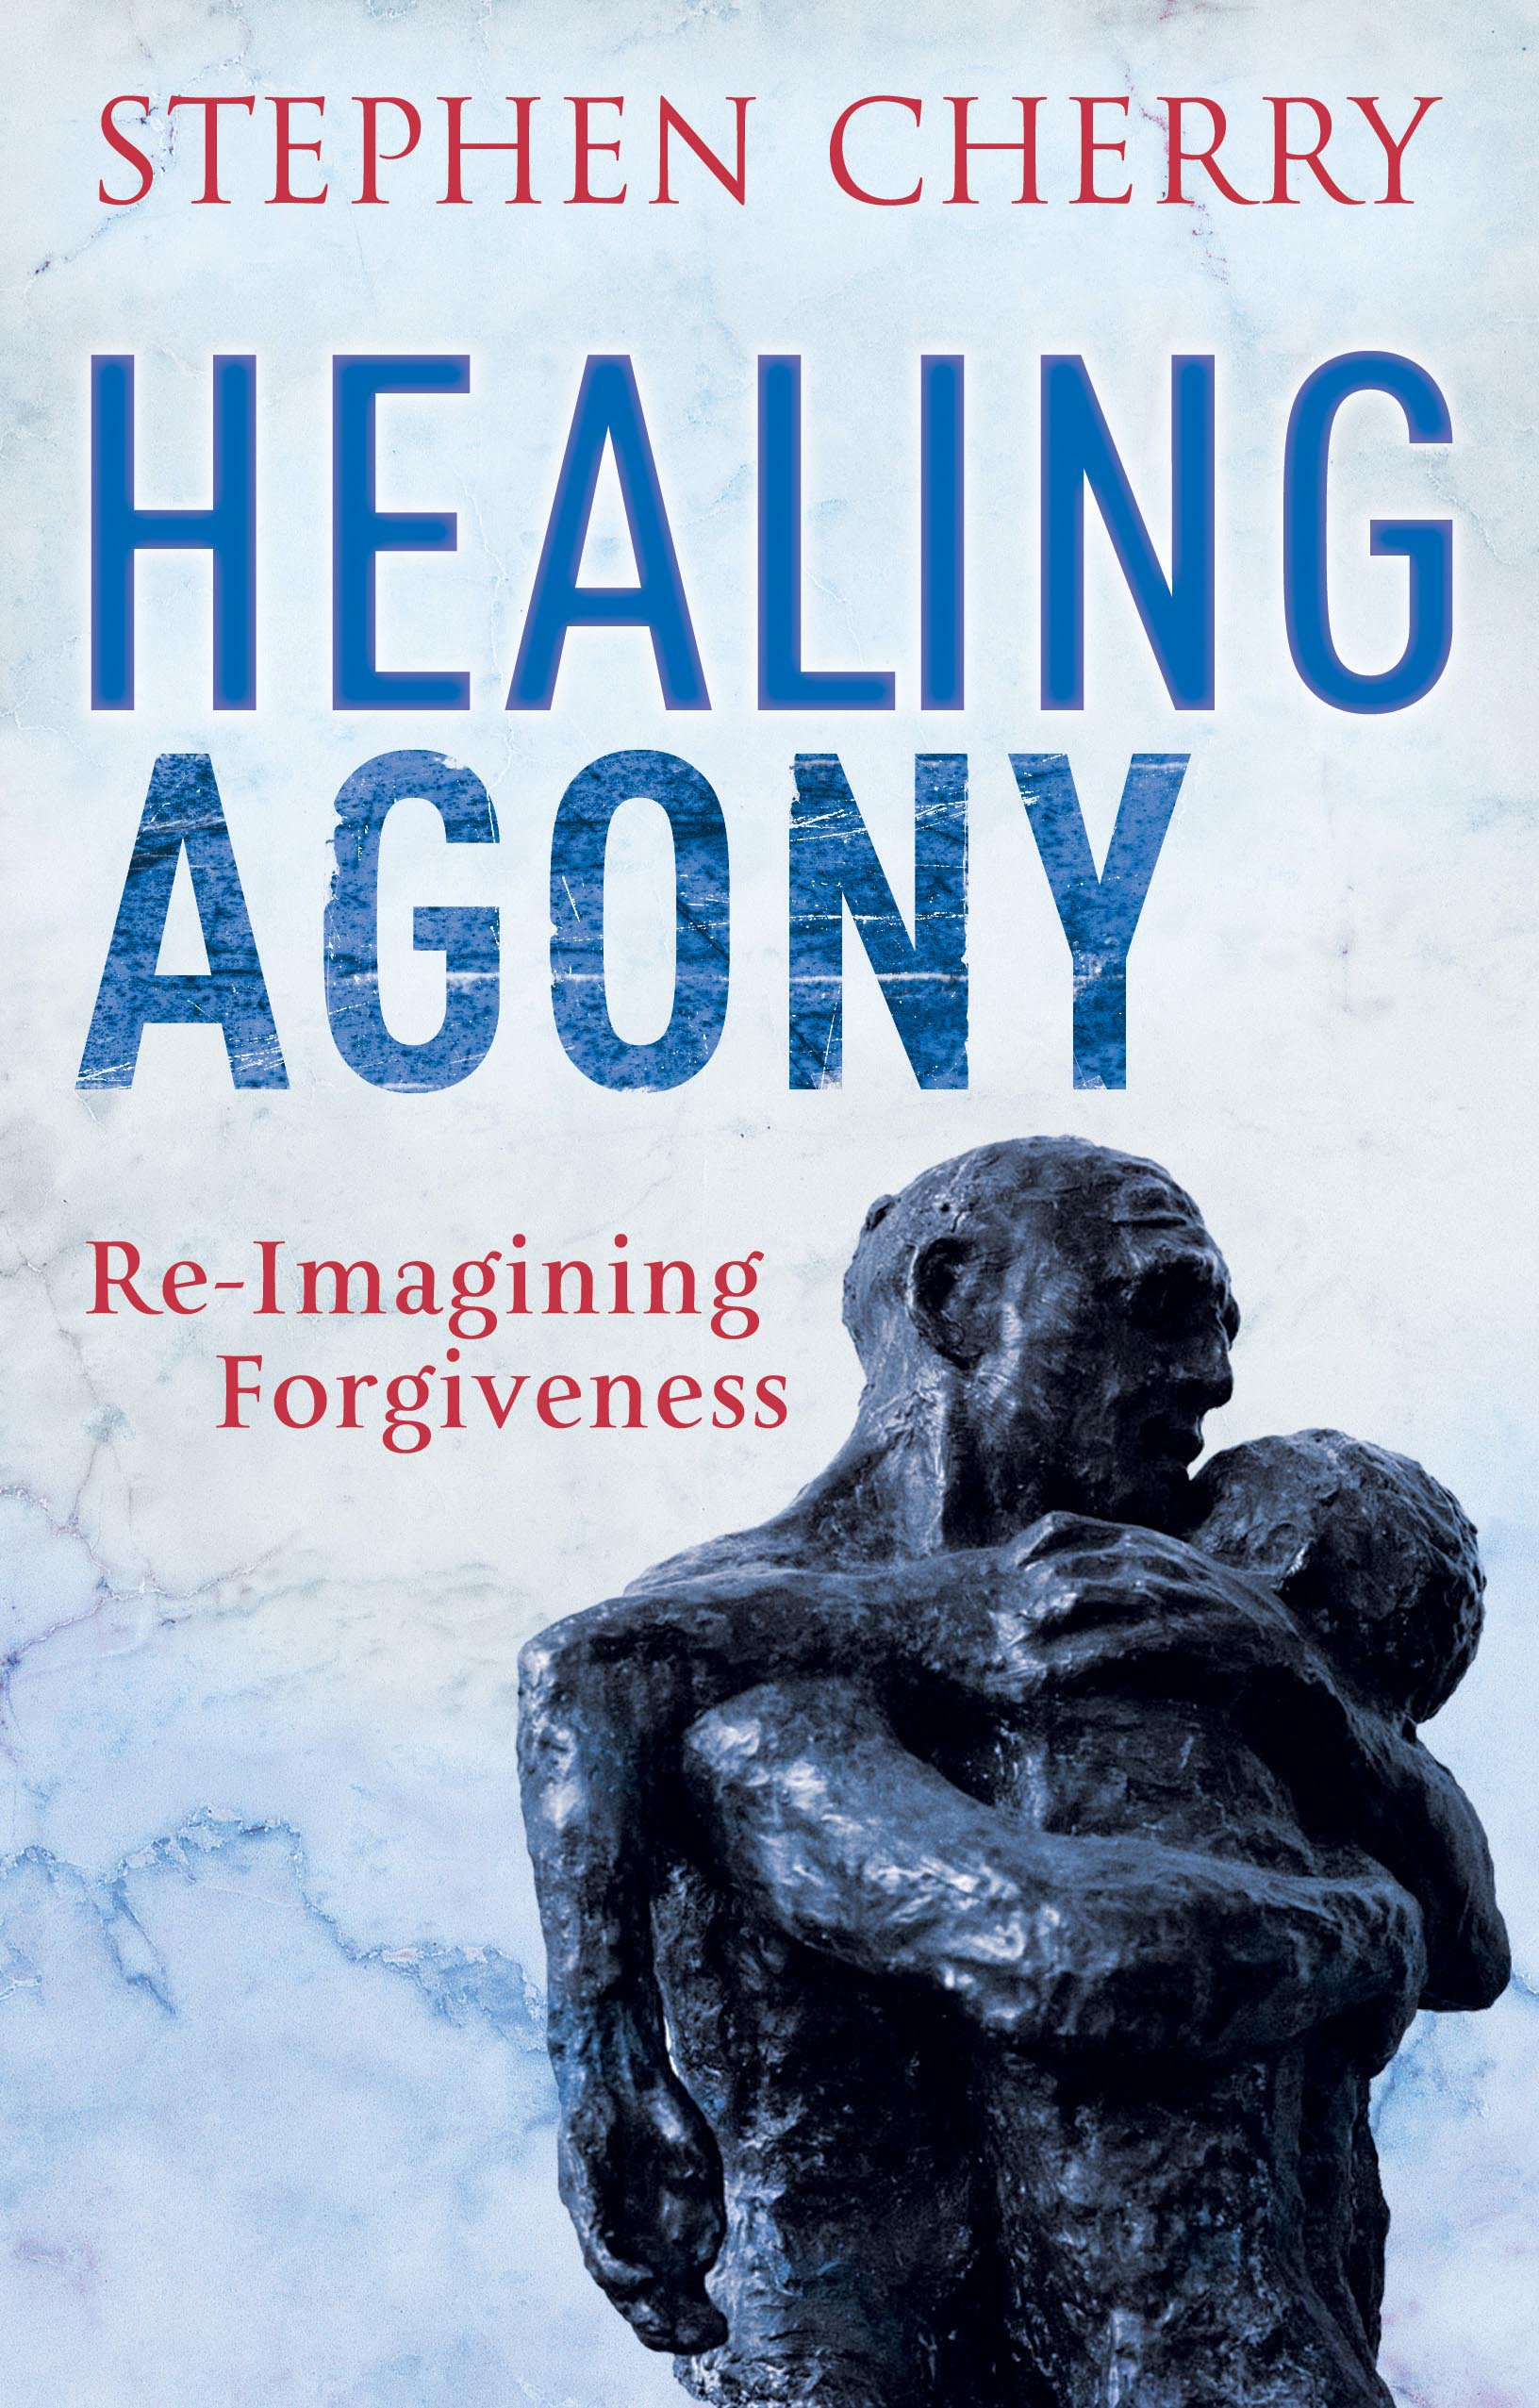 to err is human to forgive is divine essay the forgiveness project  the forgiveness project stories for a vengeful age amazon co uk healing agony re imagining forgiveness